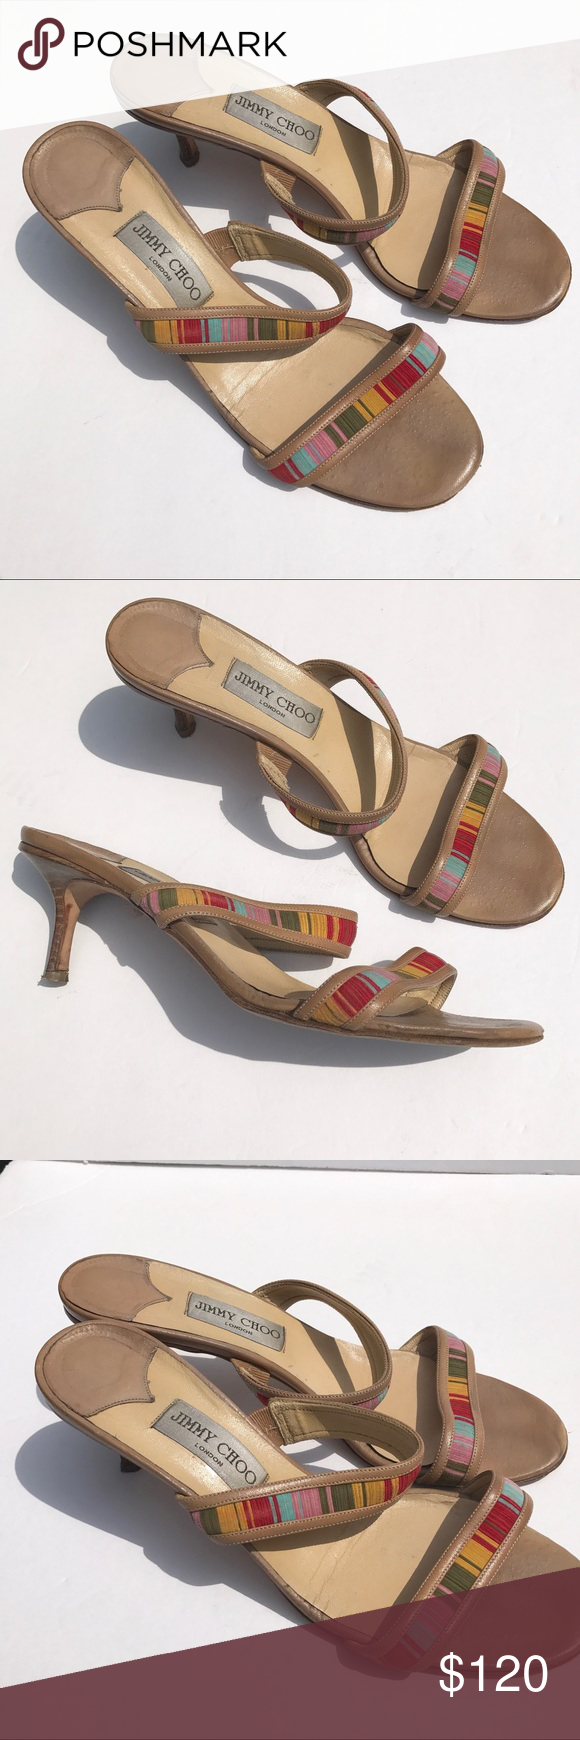 c1be9cdd72a JIMMY CHOO Aztec heels sandals 41 shoes 10 11 pretty JIMMY CHOO Sandals in  a size 41. Pre-owned. Jimmy Choo Shoes Heels